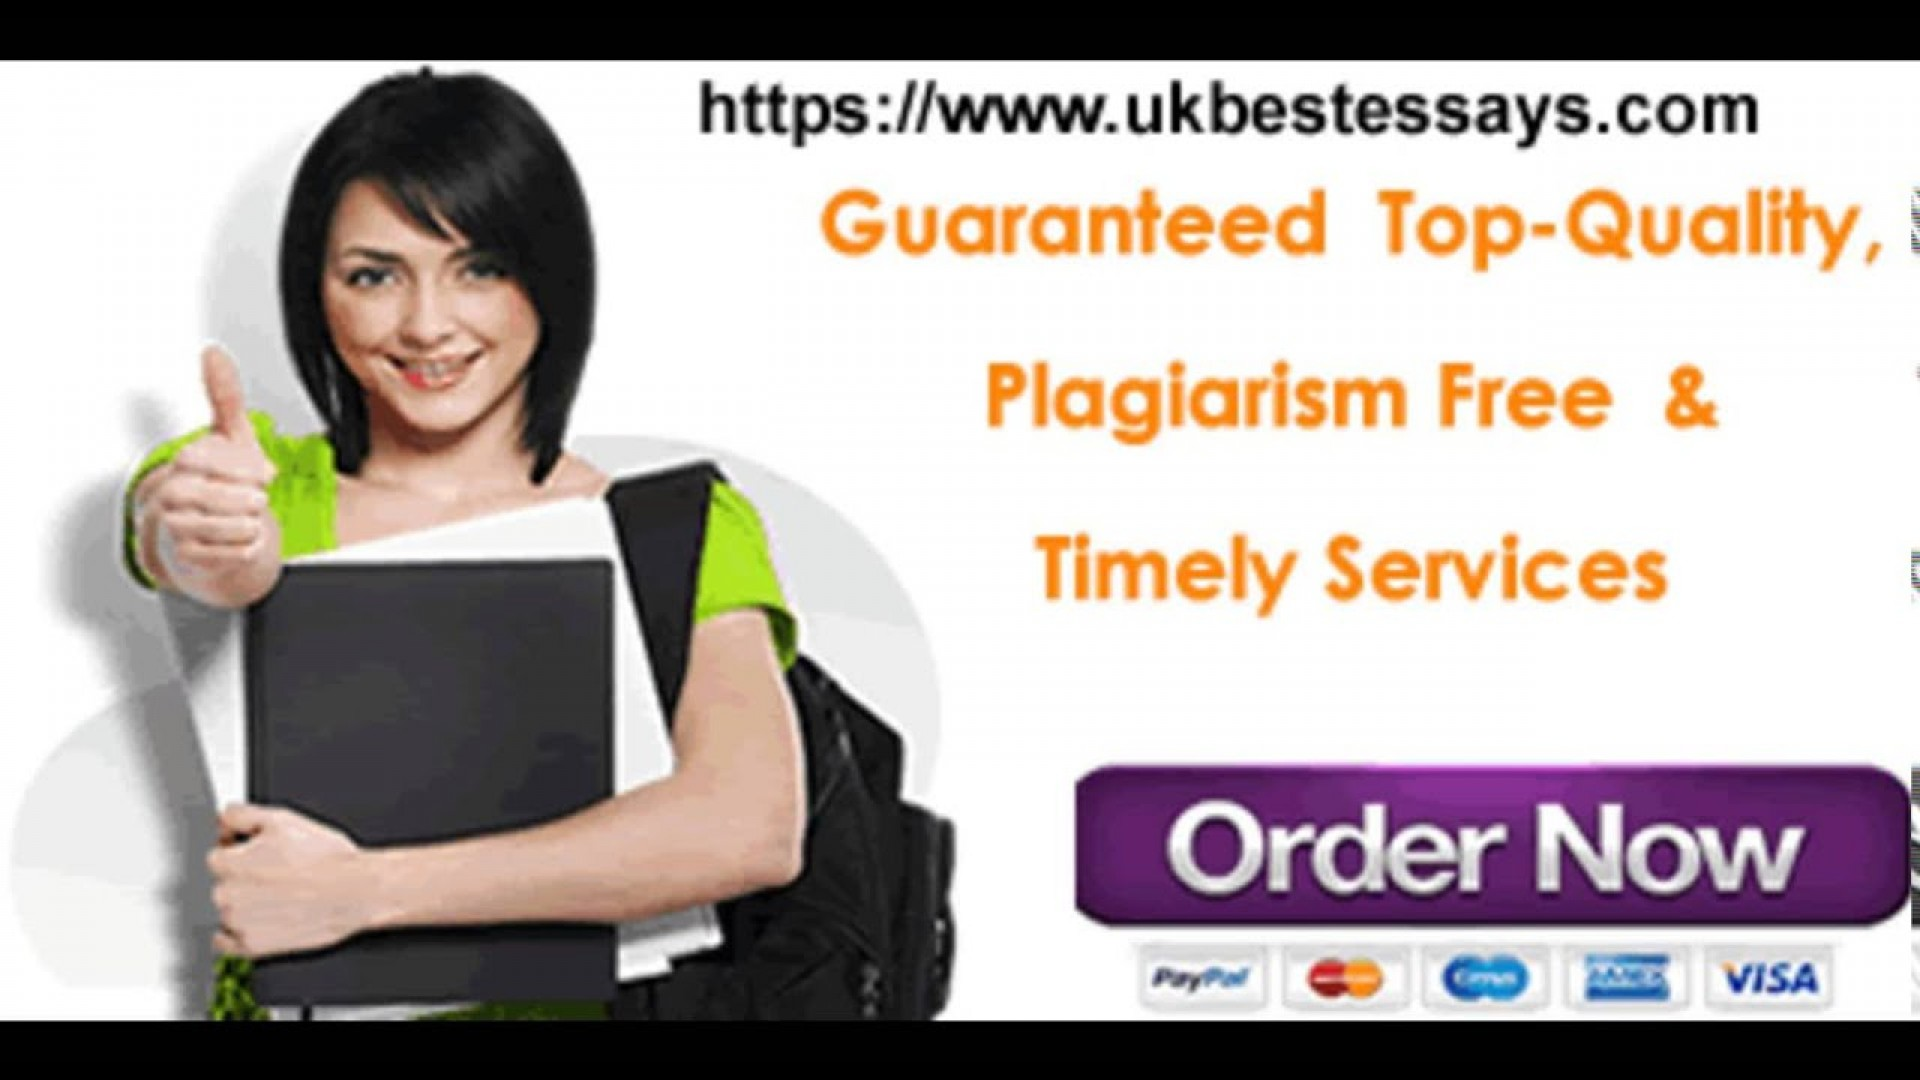 011 Essay Example Writing Service Best Essays Uk Trusted Custom Safe Wondrous Free Reviews Forum 1920